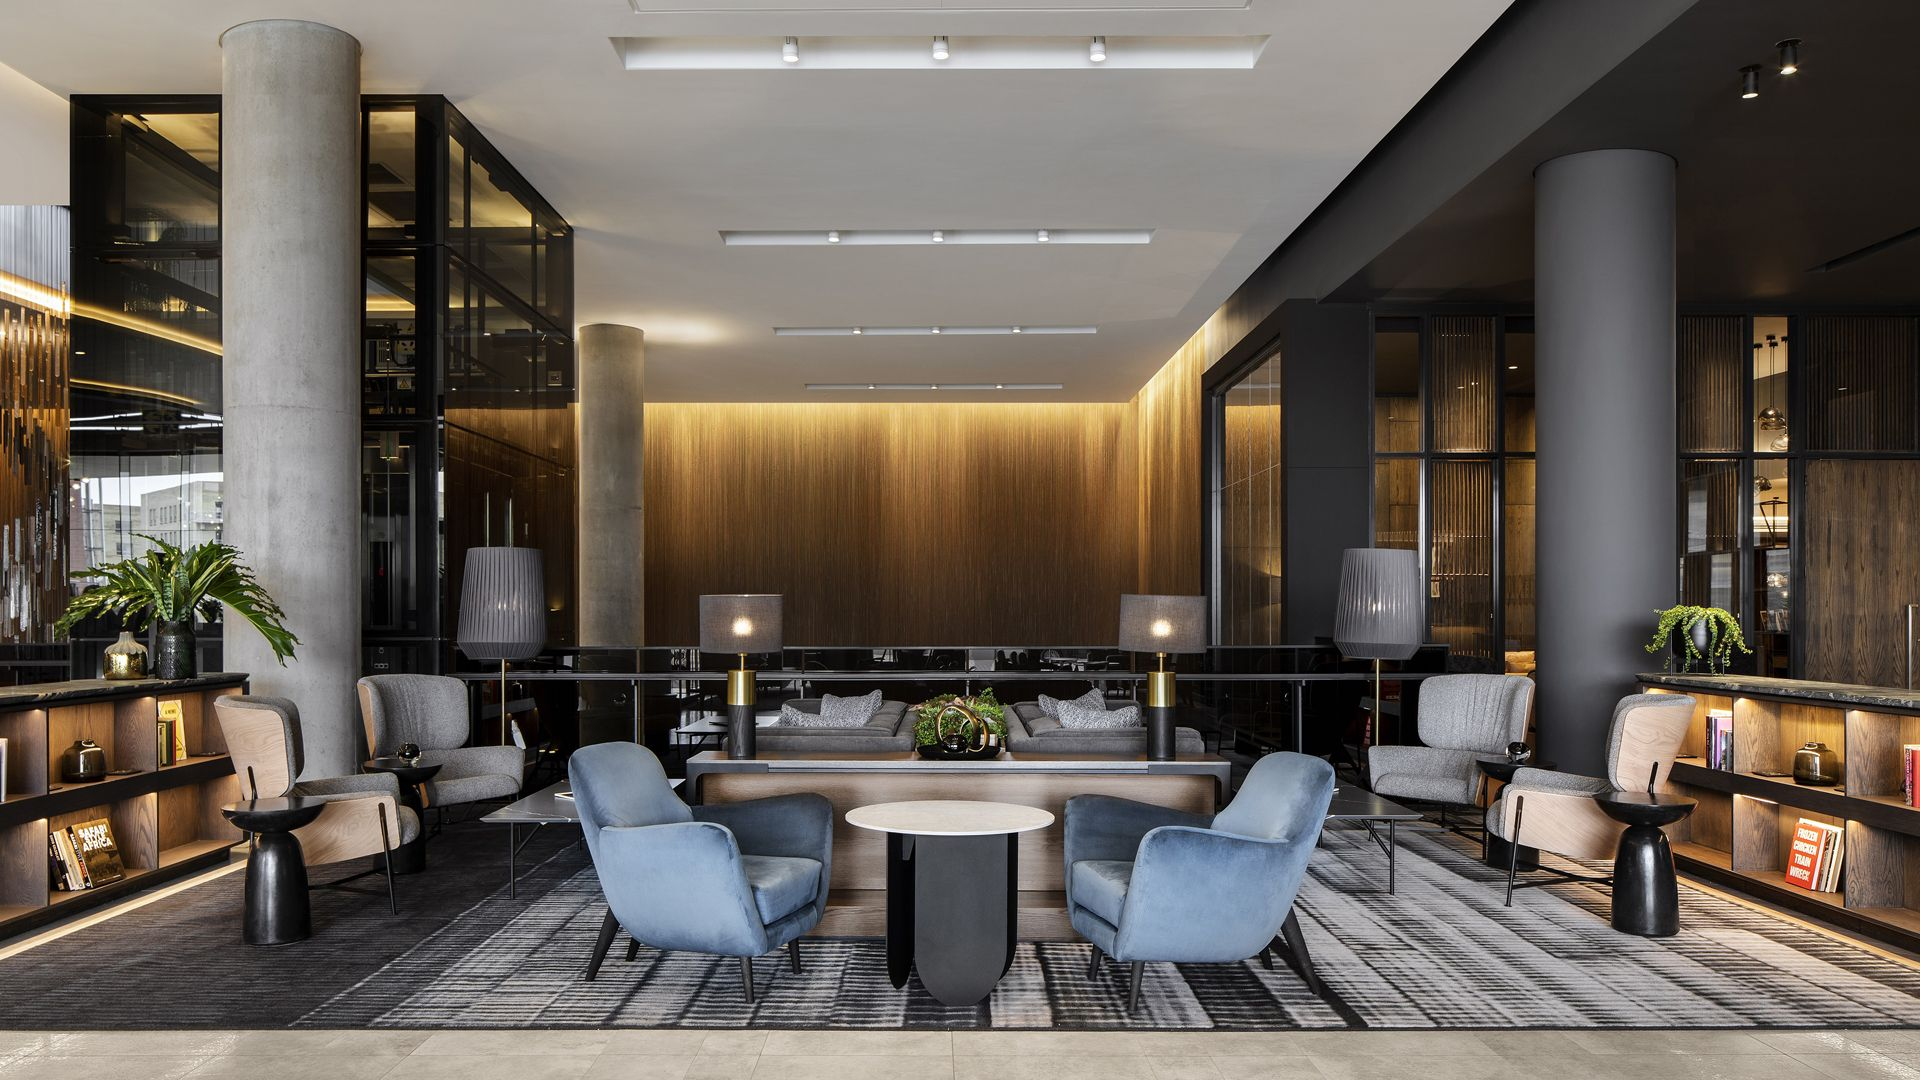 Marriott International Opens Marriott Hotel and First Marriott Executive Apartments in South Africa